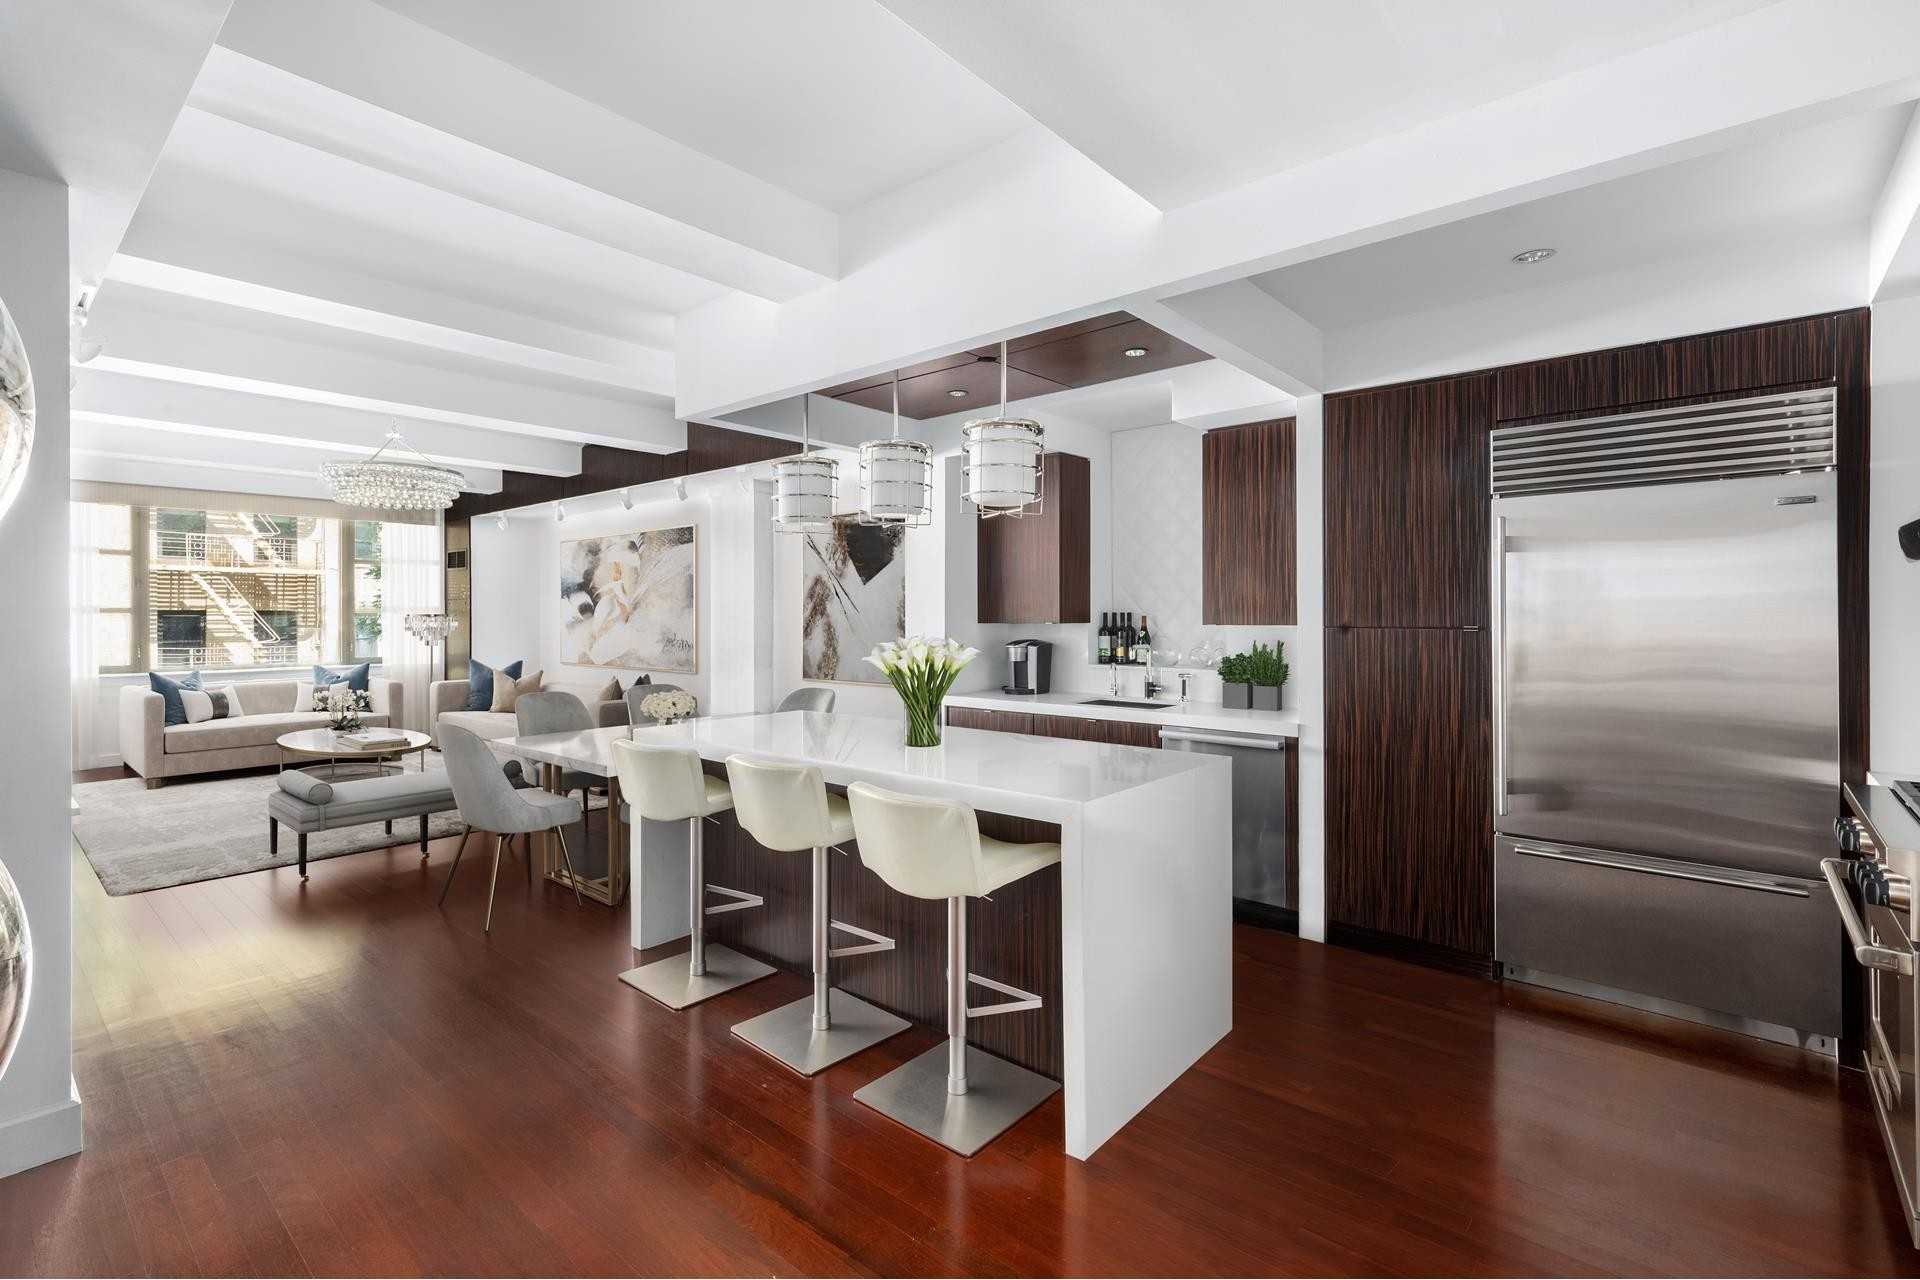 2. Condominiums for Sale at Liberty Lofts, 43 West 64th St, 3D Lincoln Square, New York, NY 10023